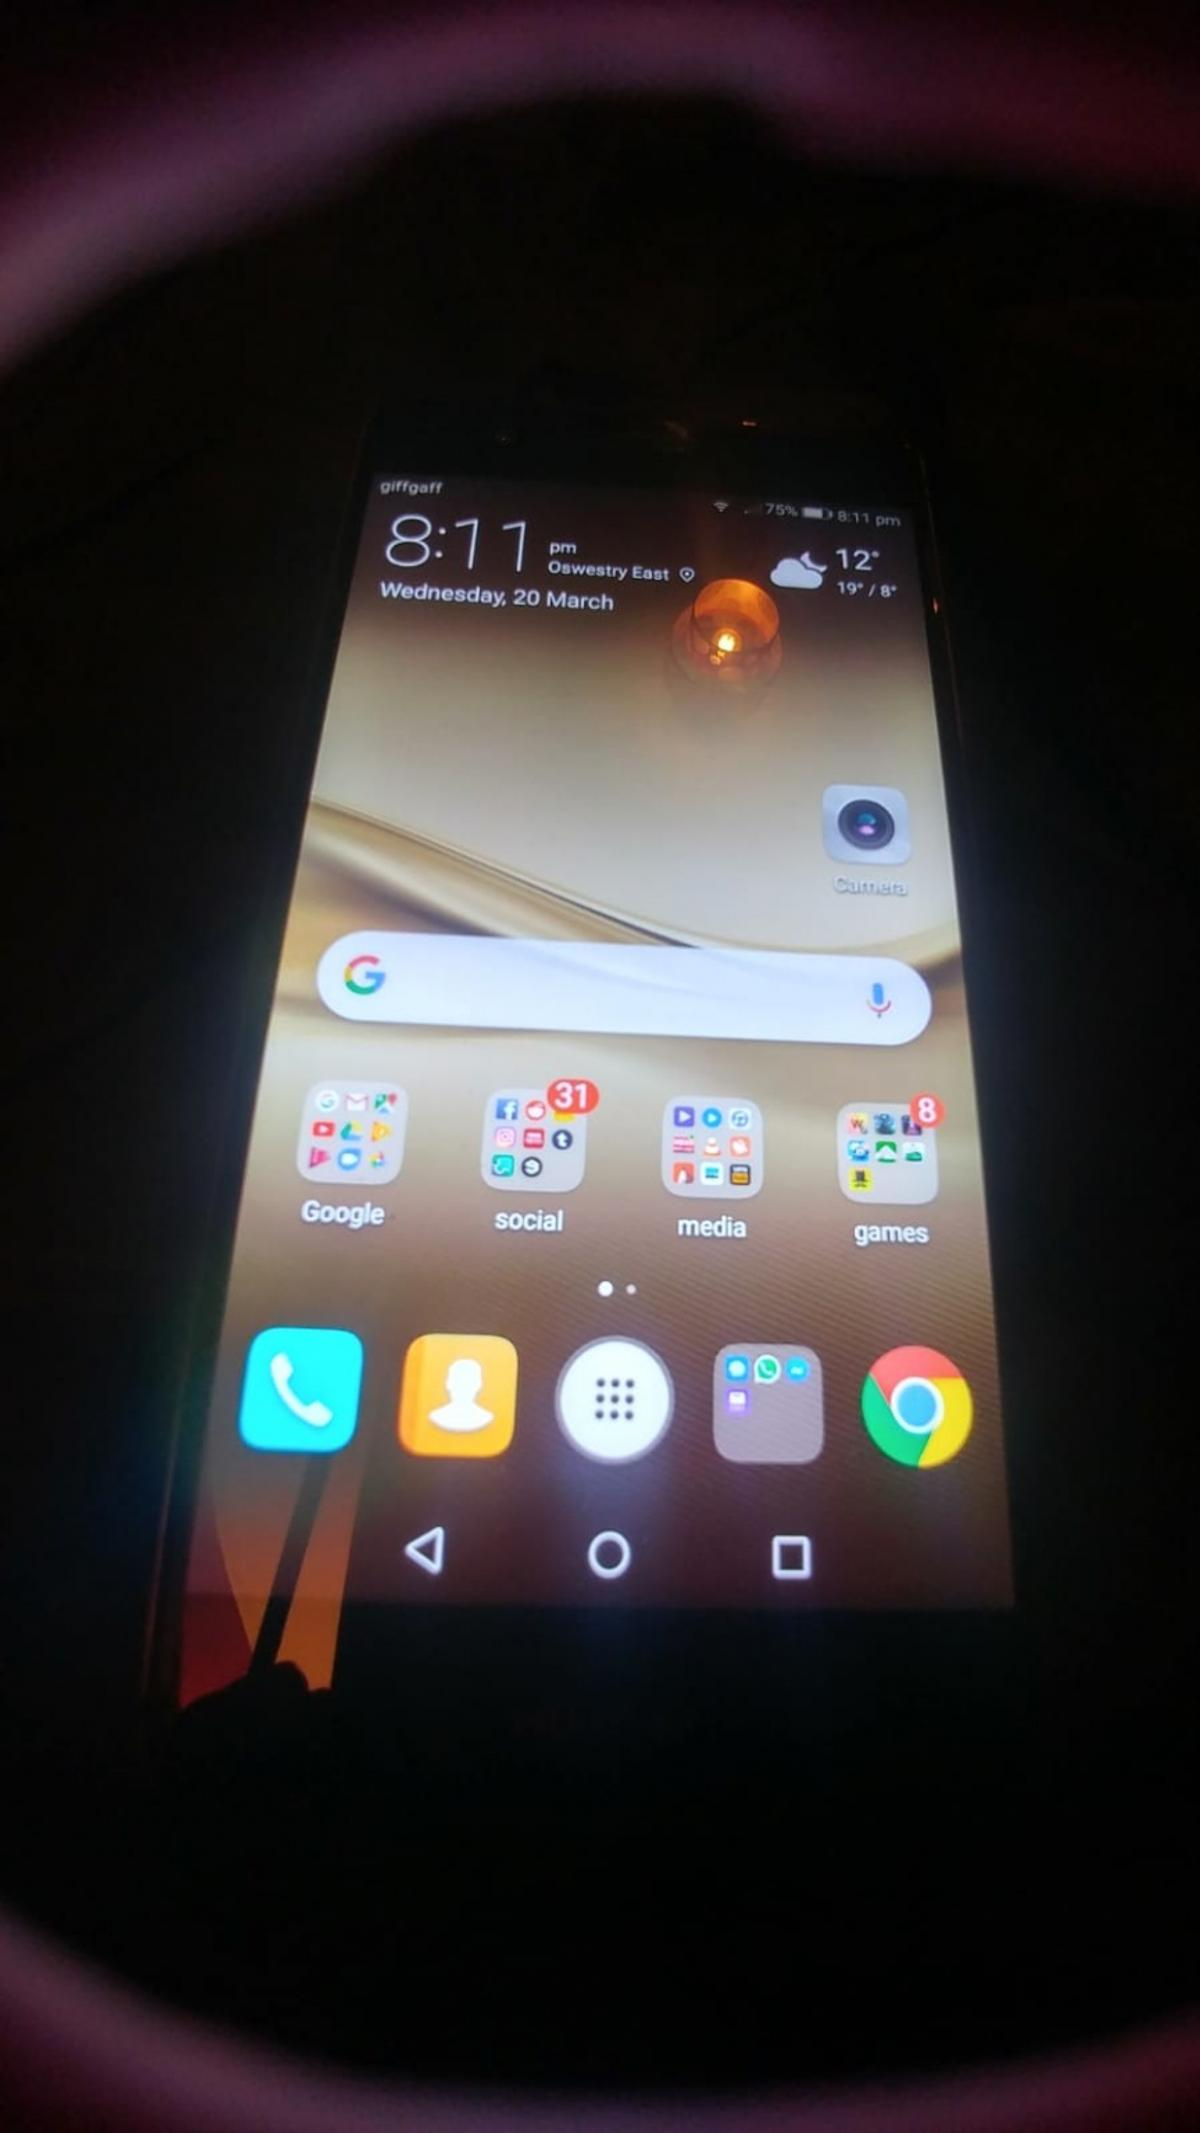 Huawei p9 in SY11 Oswestry for £75 00 for sale - Shpock